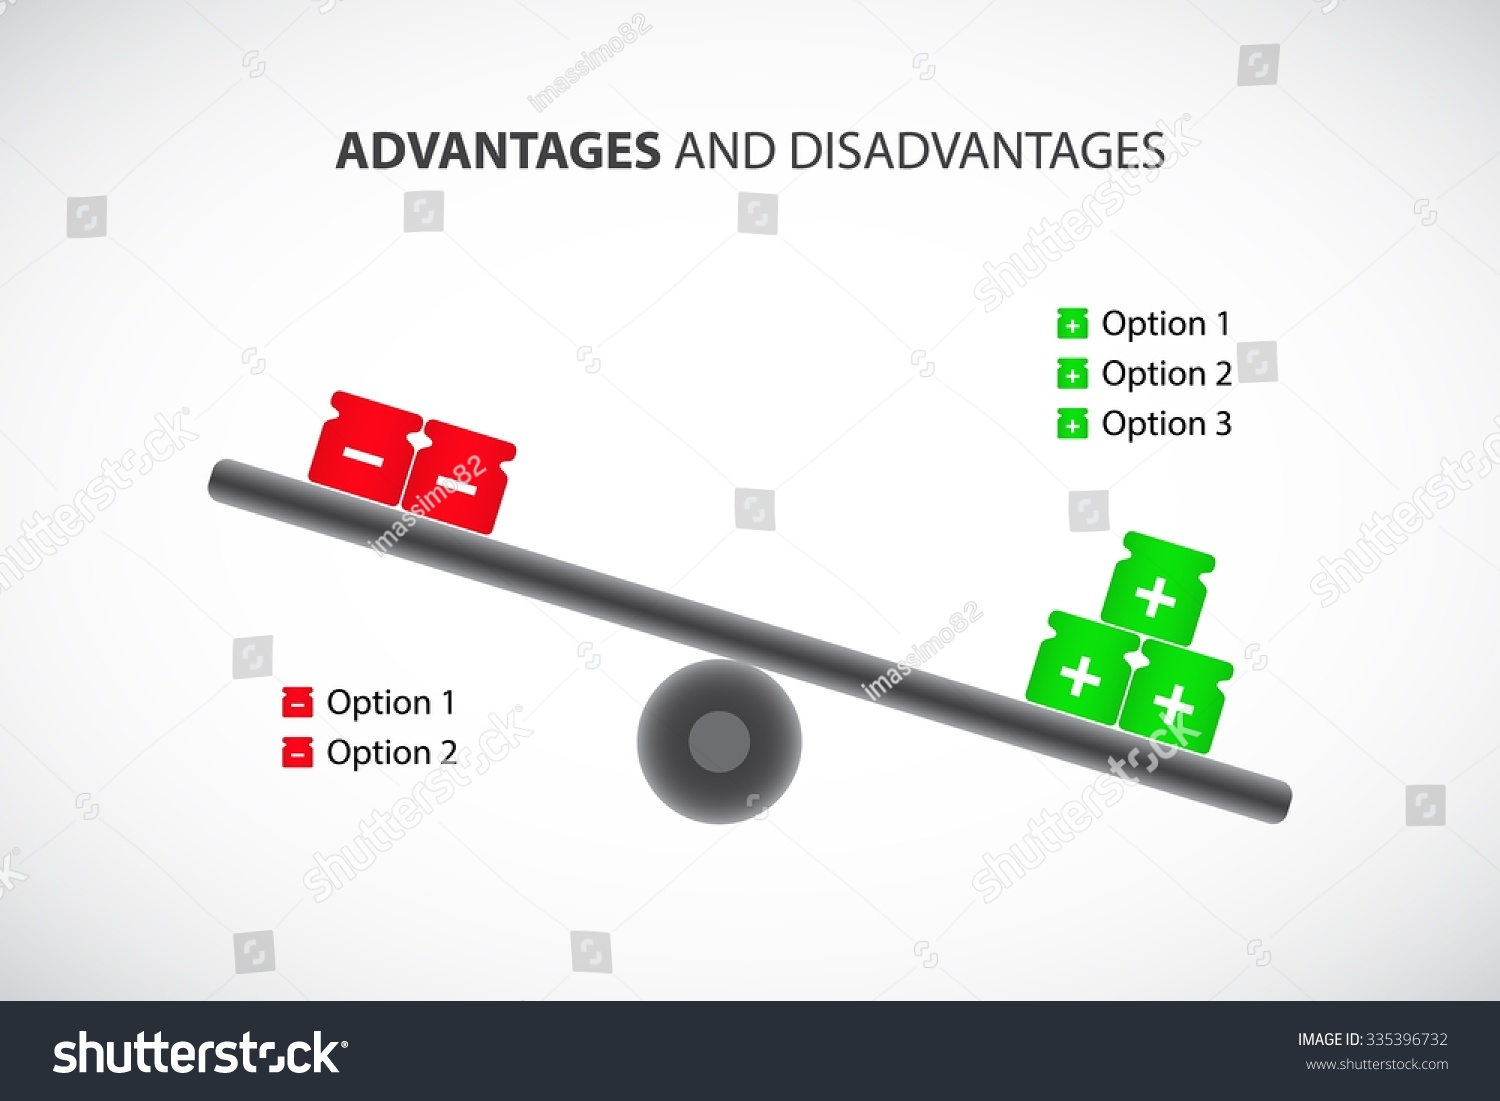 balance advantages favoring over disadvantages positive stock balance advantages favoring over disadvantages positive and negative factors vector infographic